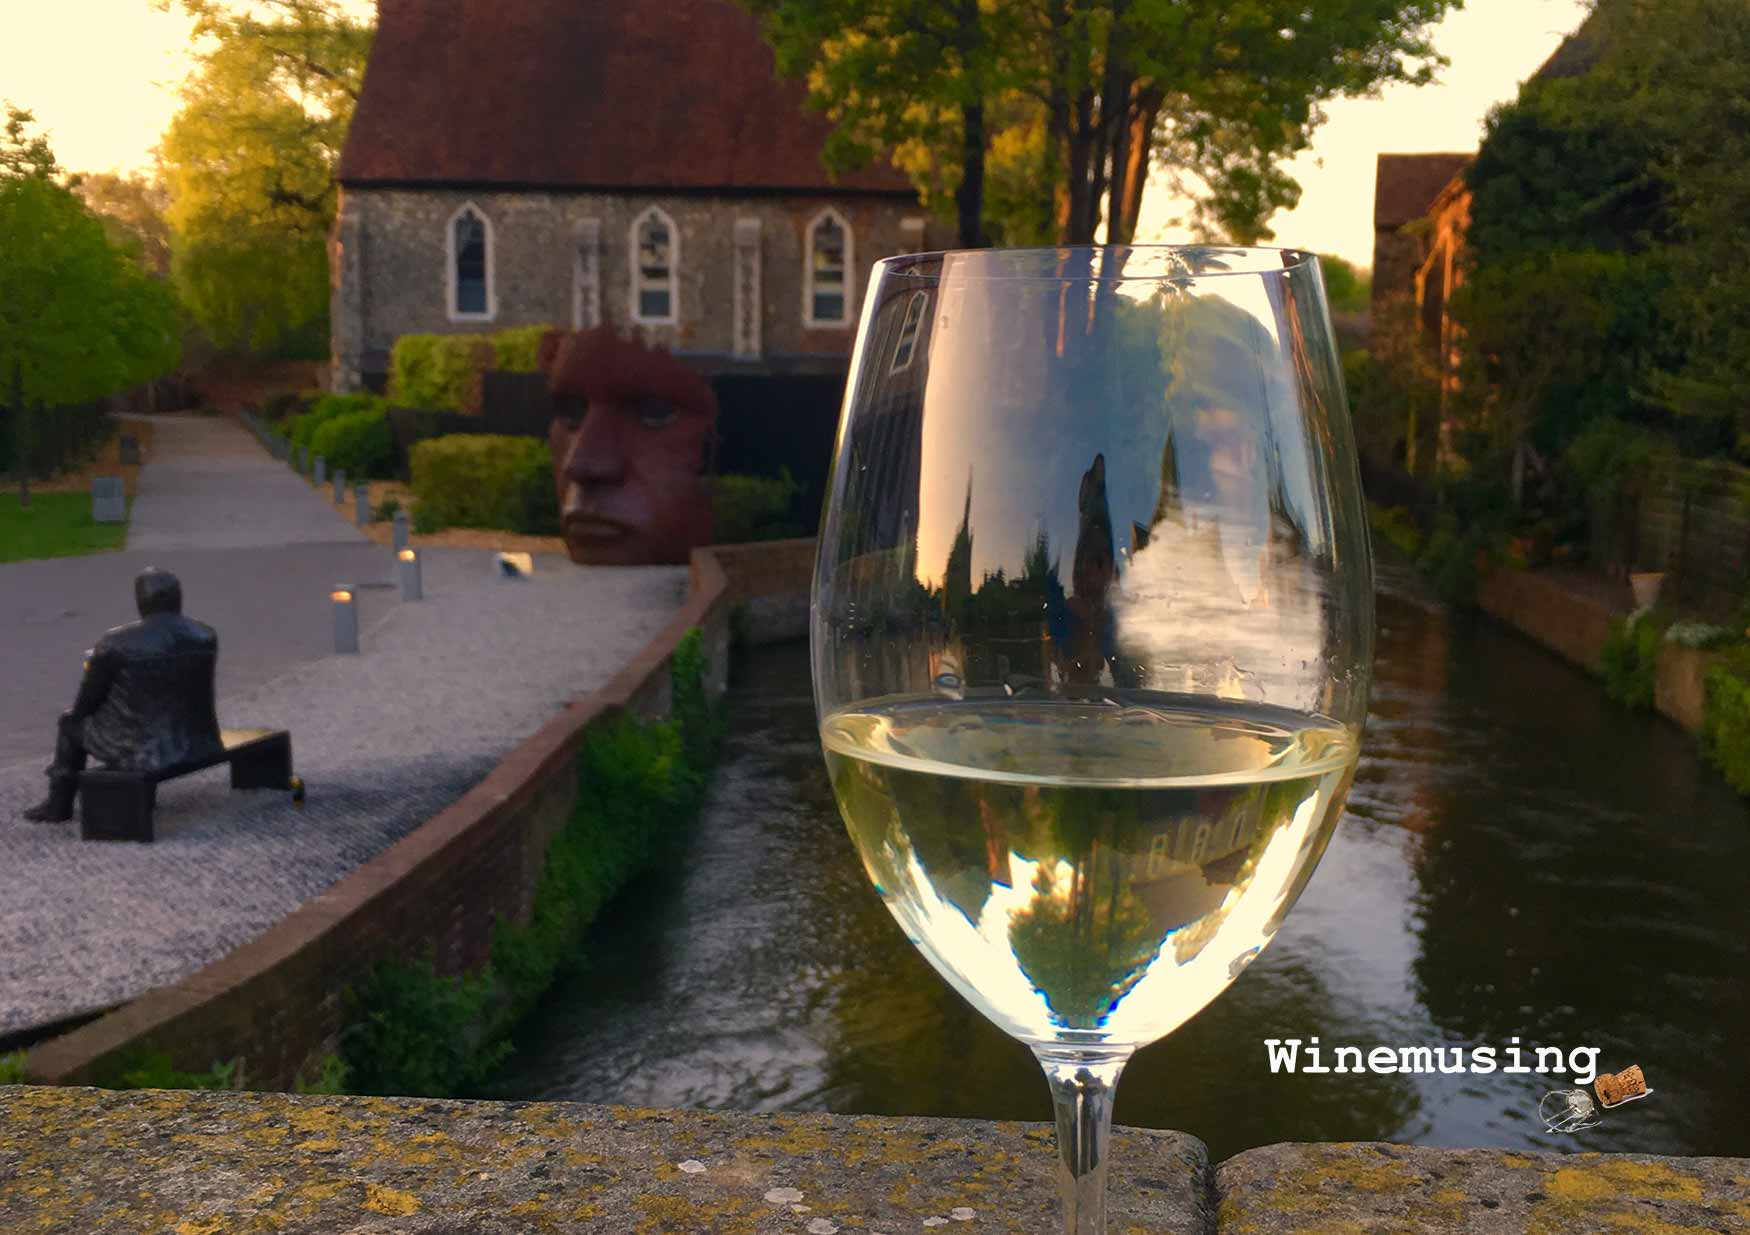 Bacchus: An English wine story ….